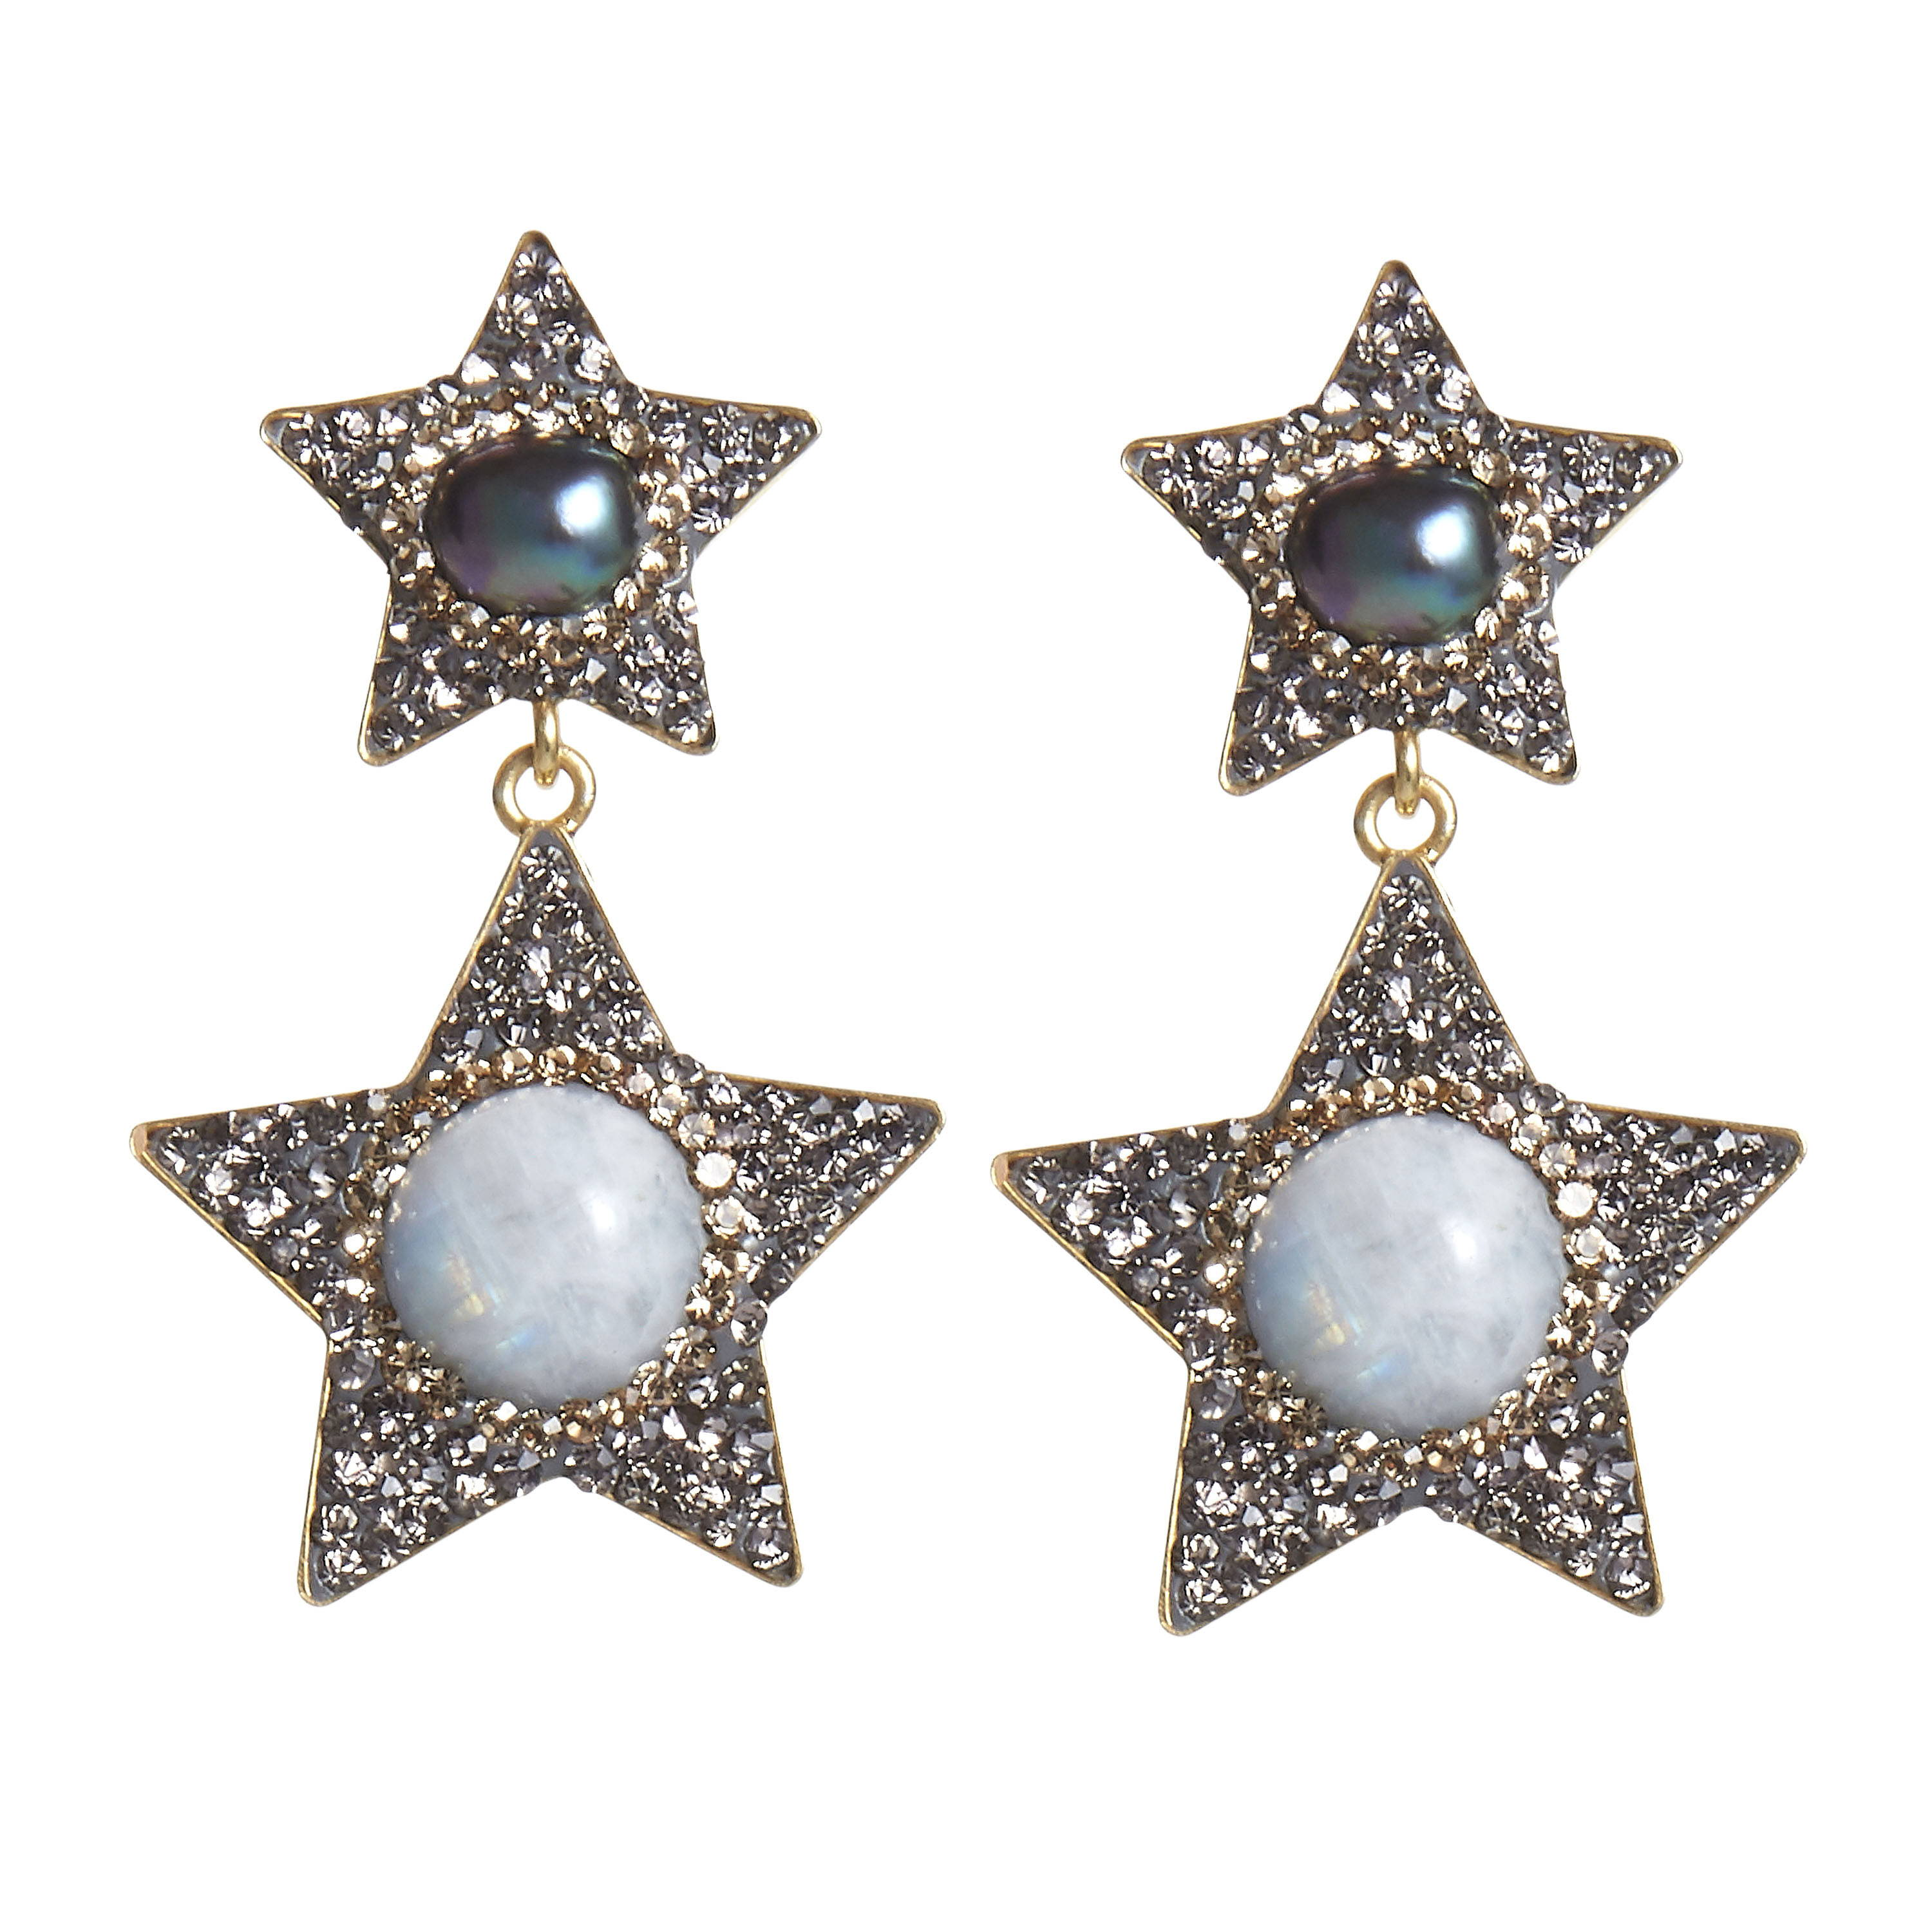 SORU JEWELLERY MOONSONE EARRINGS,  SORU MOONSTONE STAR EARRINGS IN HARPERS BAZAAR